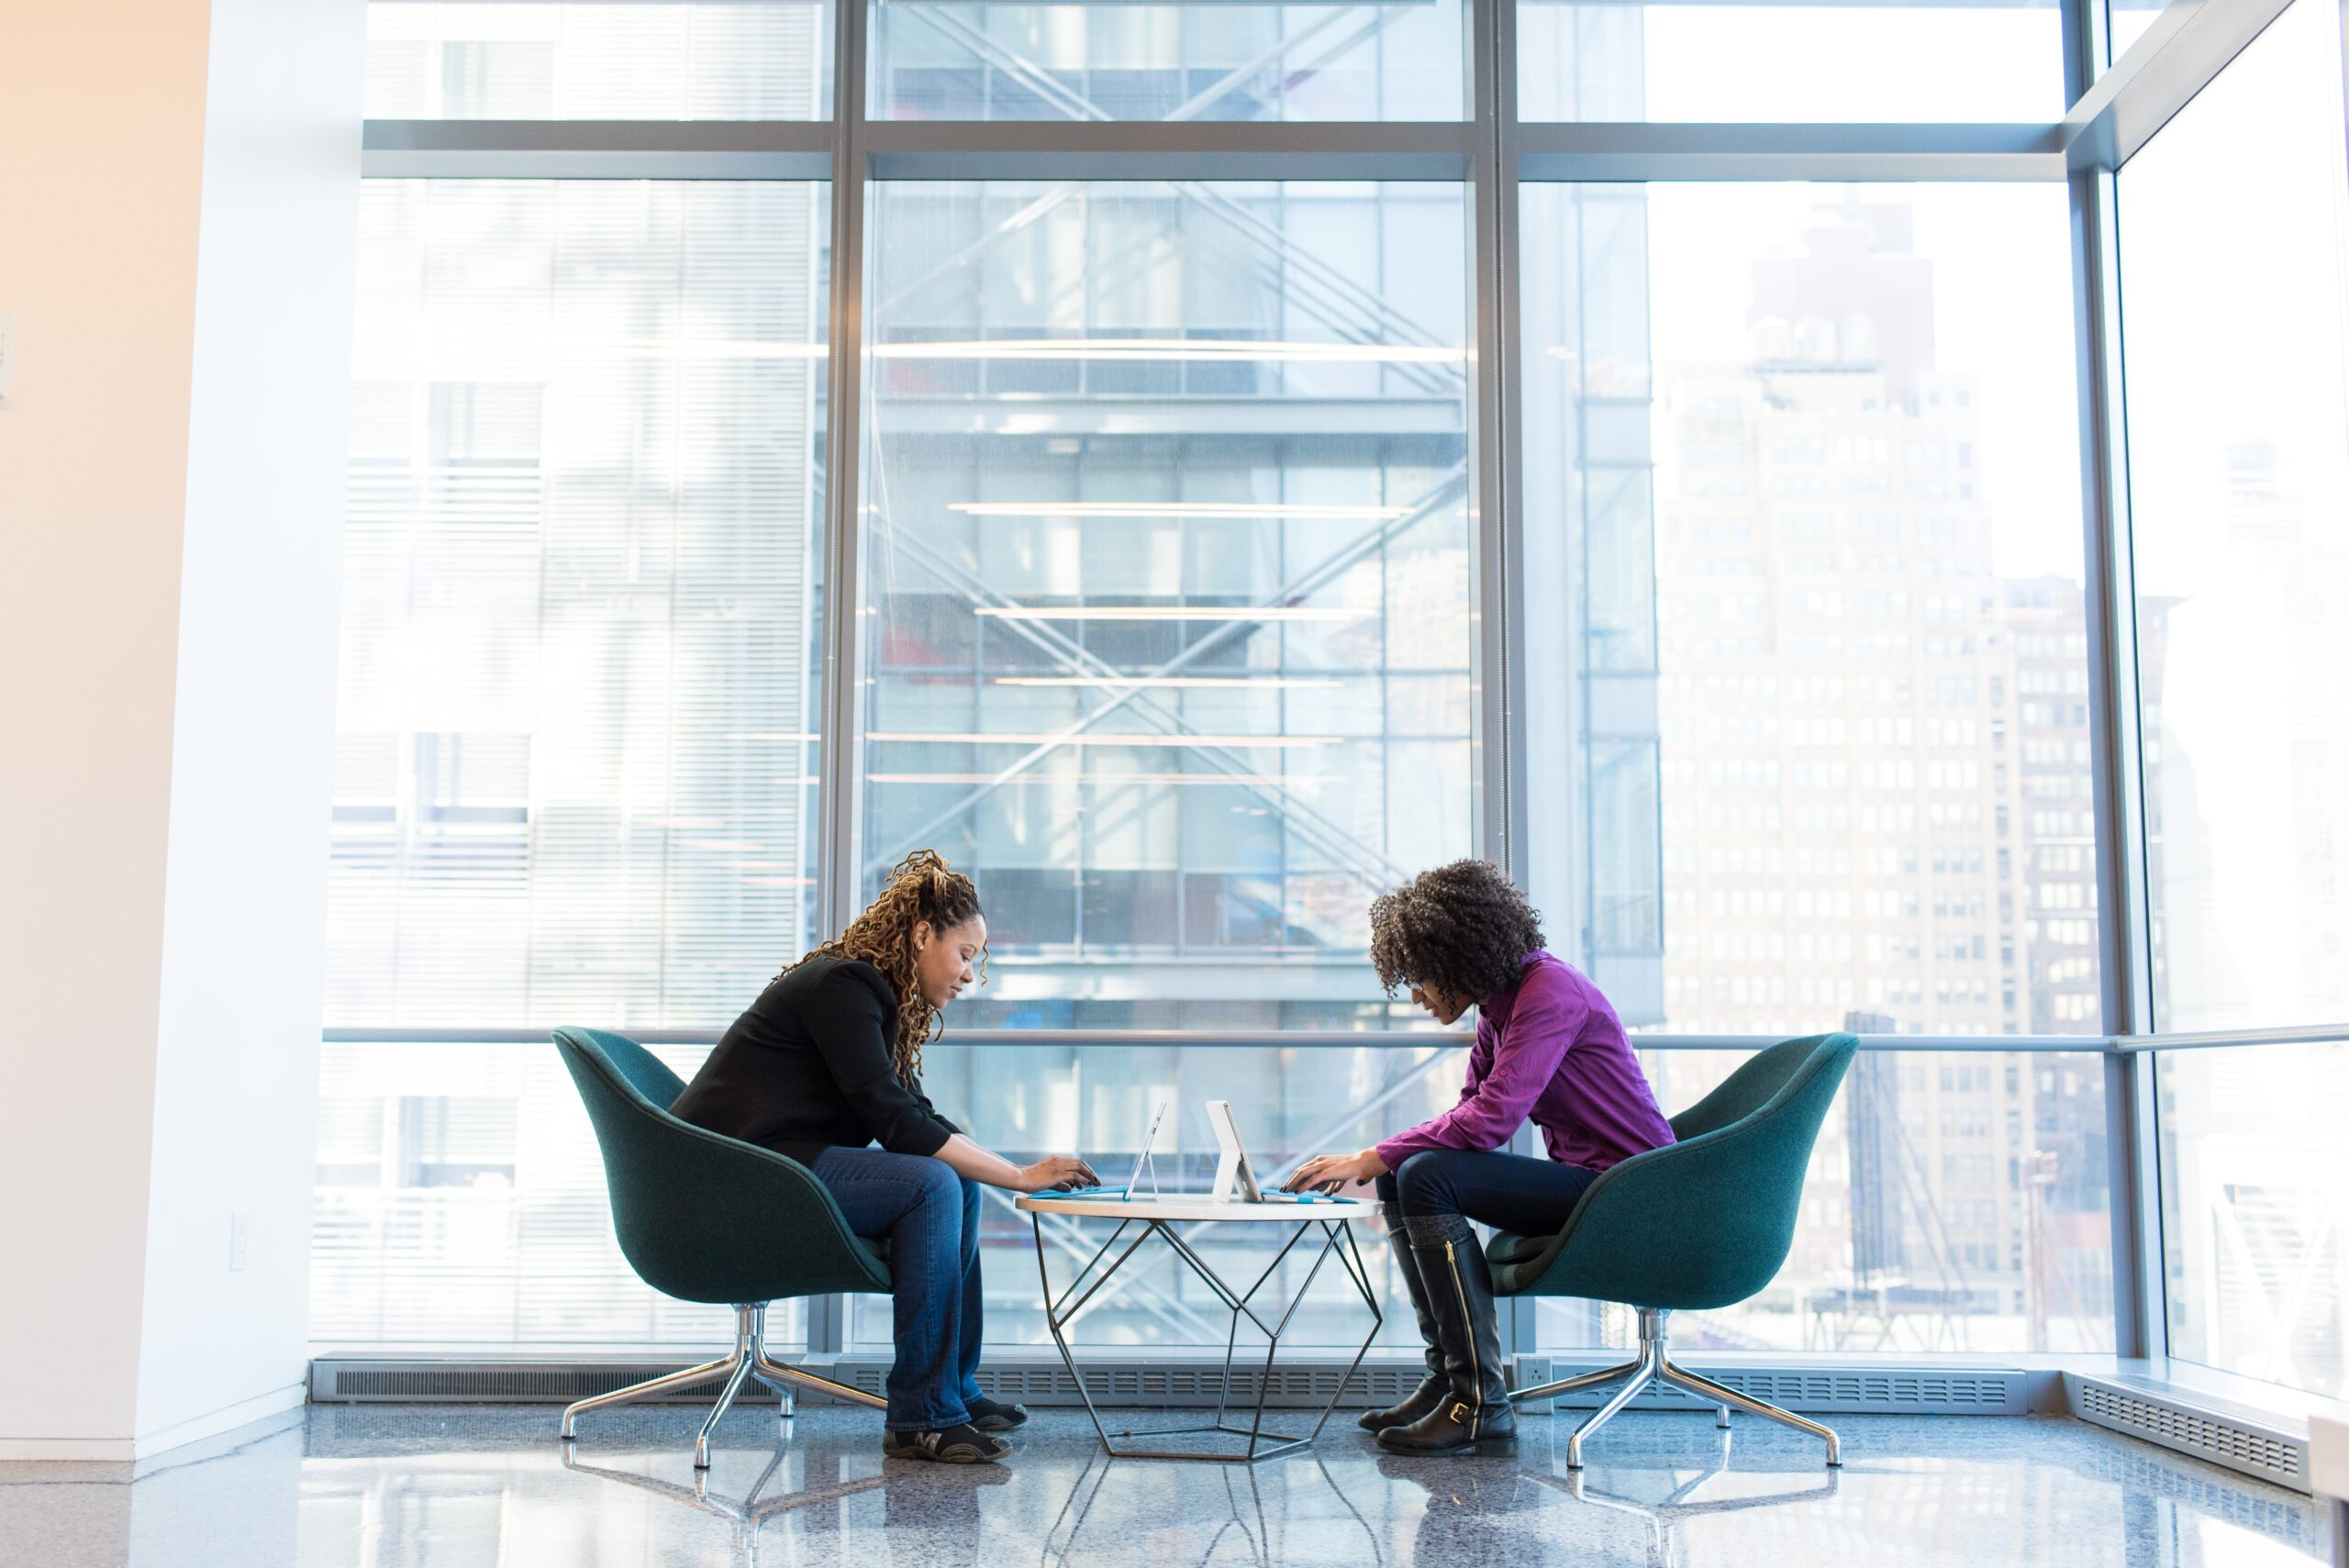 SEMINARIO | Why Gender Diversity in the Workplace matters